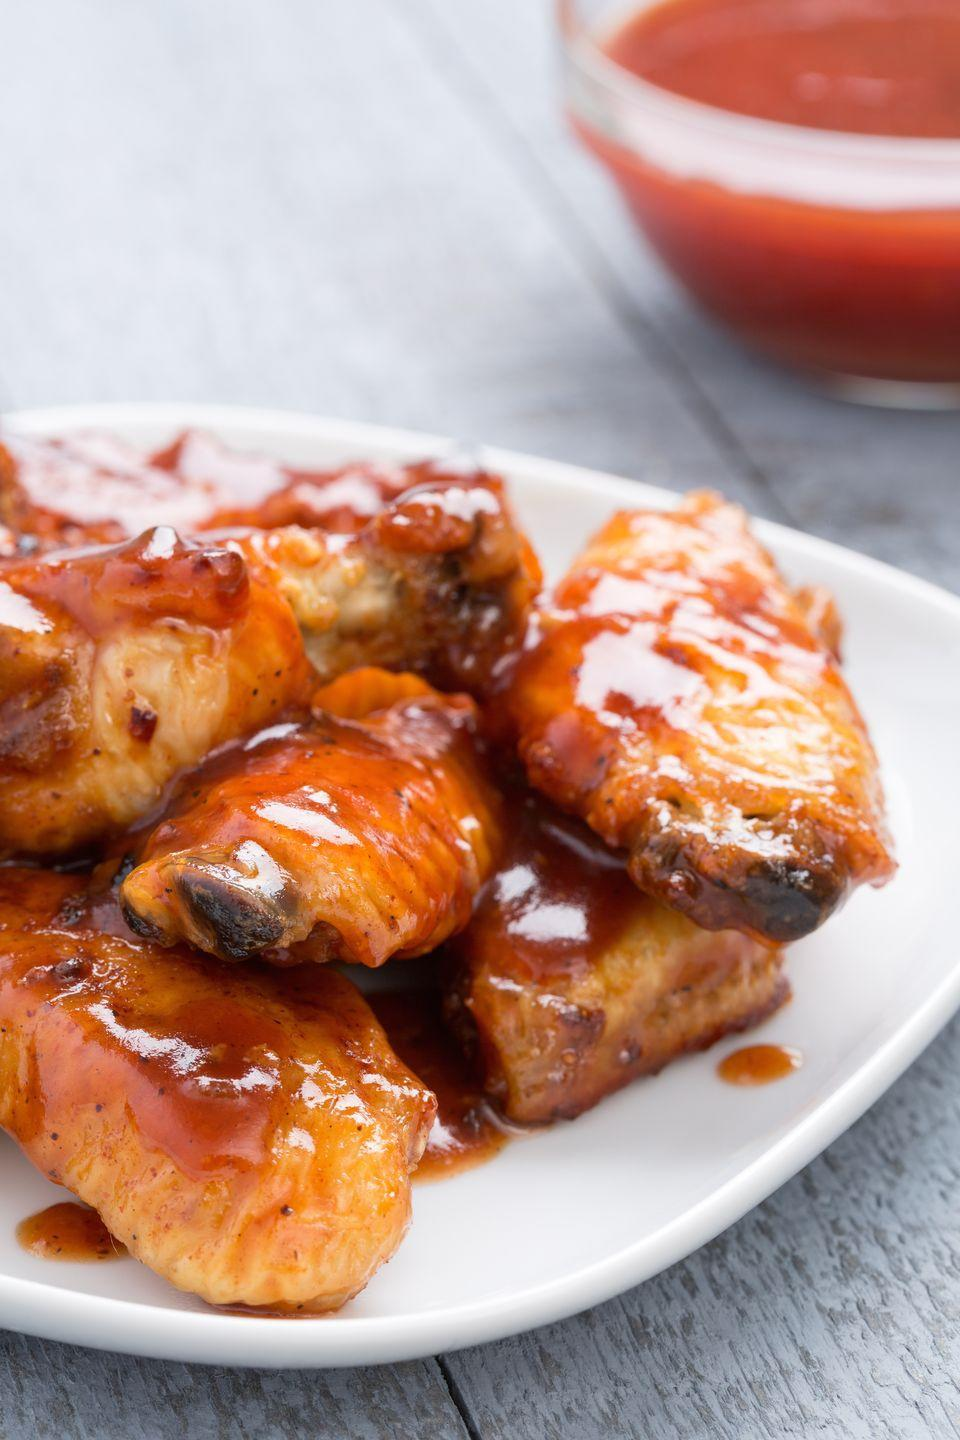 """<p>When you want to take a break from buffalo, reach for barbecue sauce—and bourbon for good measure.</p><p>Get the recipe from <a href=""""http://rams.delish.com/cooking/recipe-ideas/recipes/a44369/slow-cooker-barbecue-bourbon-chicken-wings-recipe/"""" rel=""""nofollow noopener"""" target=""""_blank"""" data-ylk=""""slk:Delish"""" class=""""link rapid-noclick-resp"""">Delish</a>. </p>"""